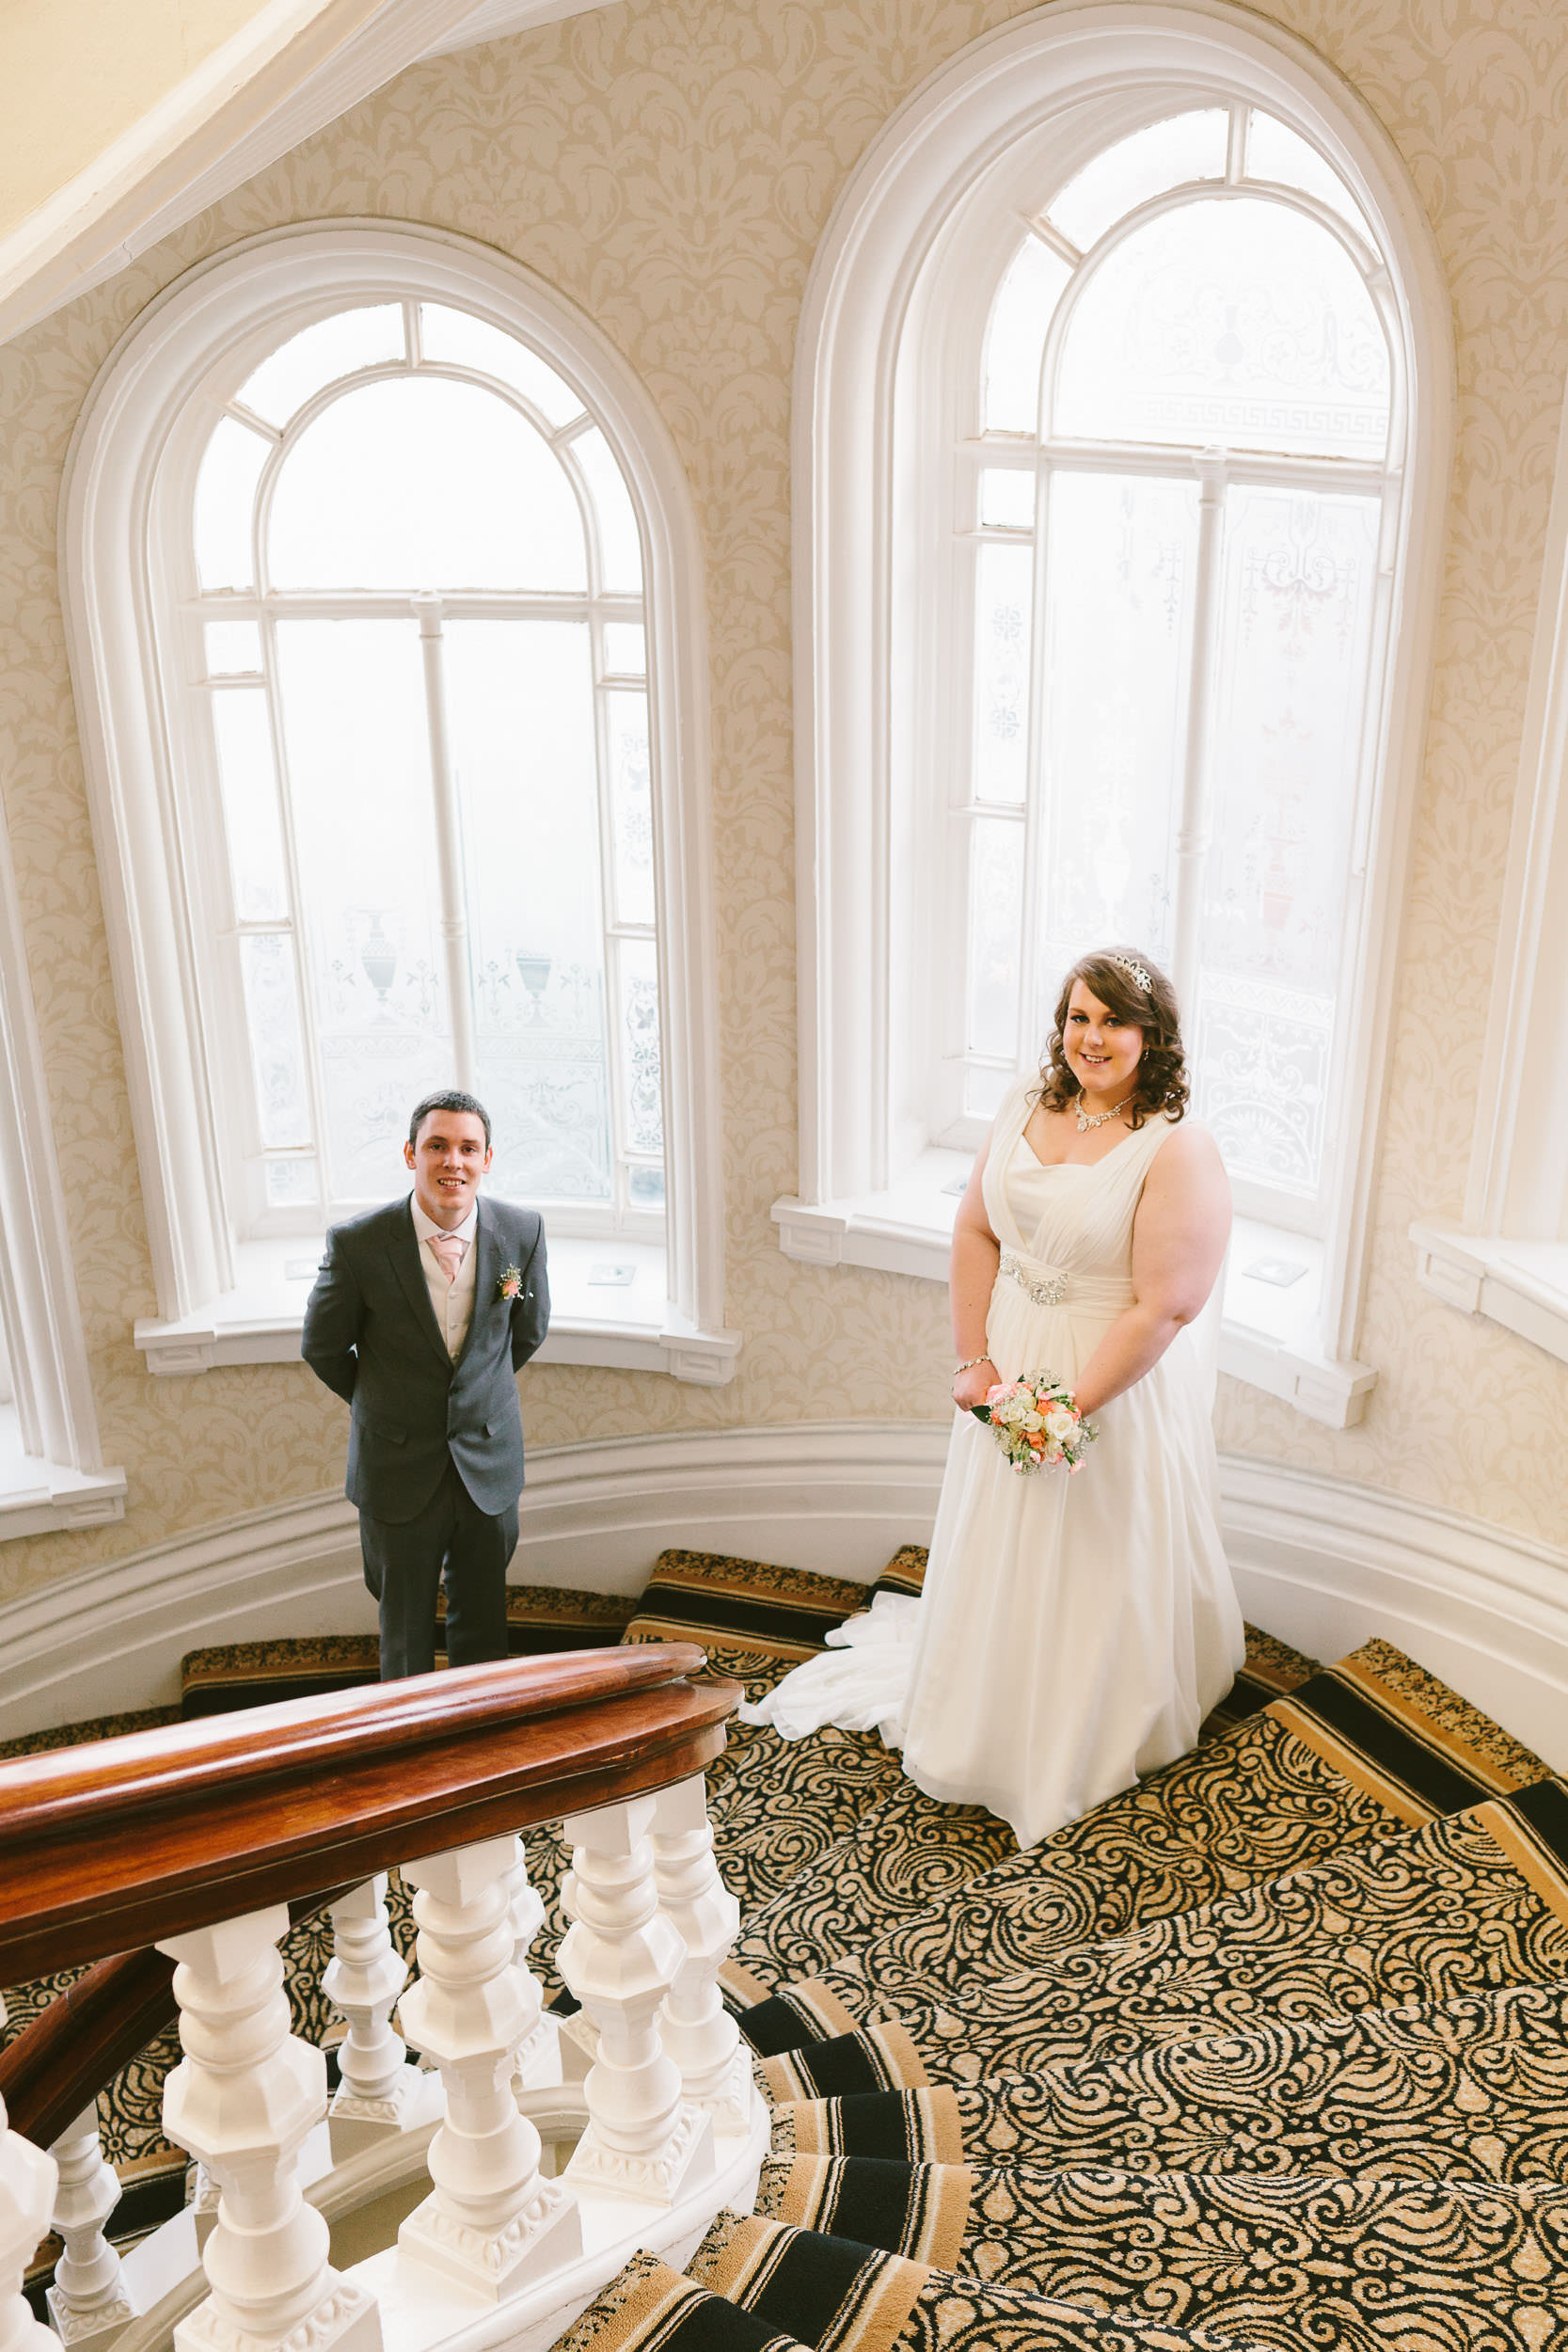 Bride and groom pose in front of tall windows on the staircase of the Grand Hotel